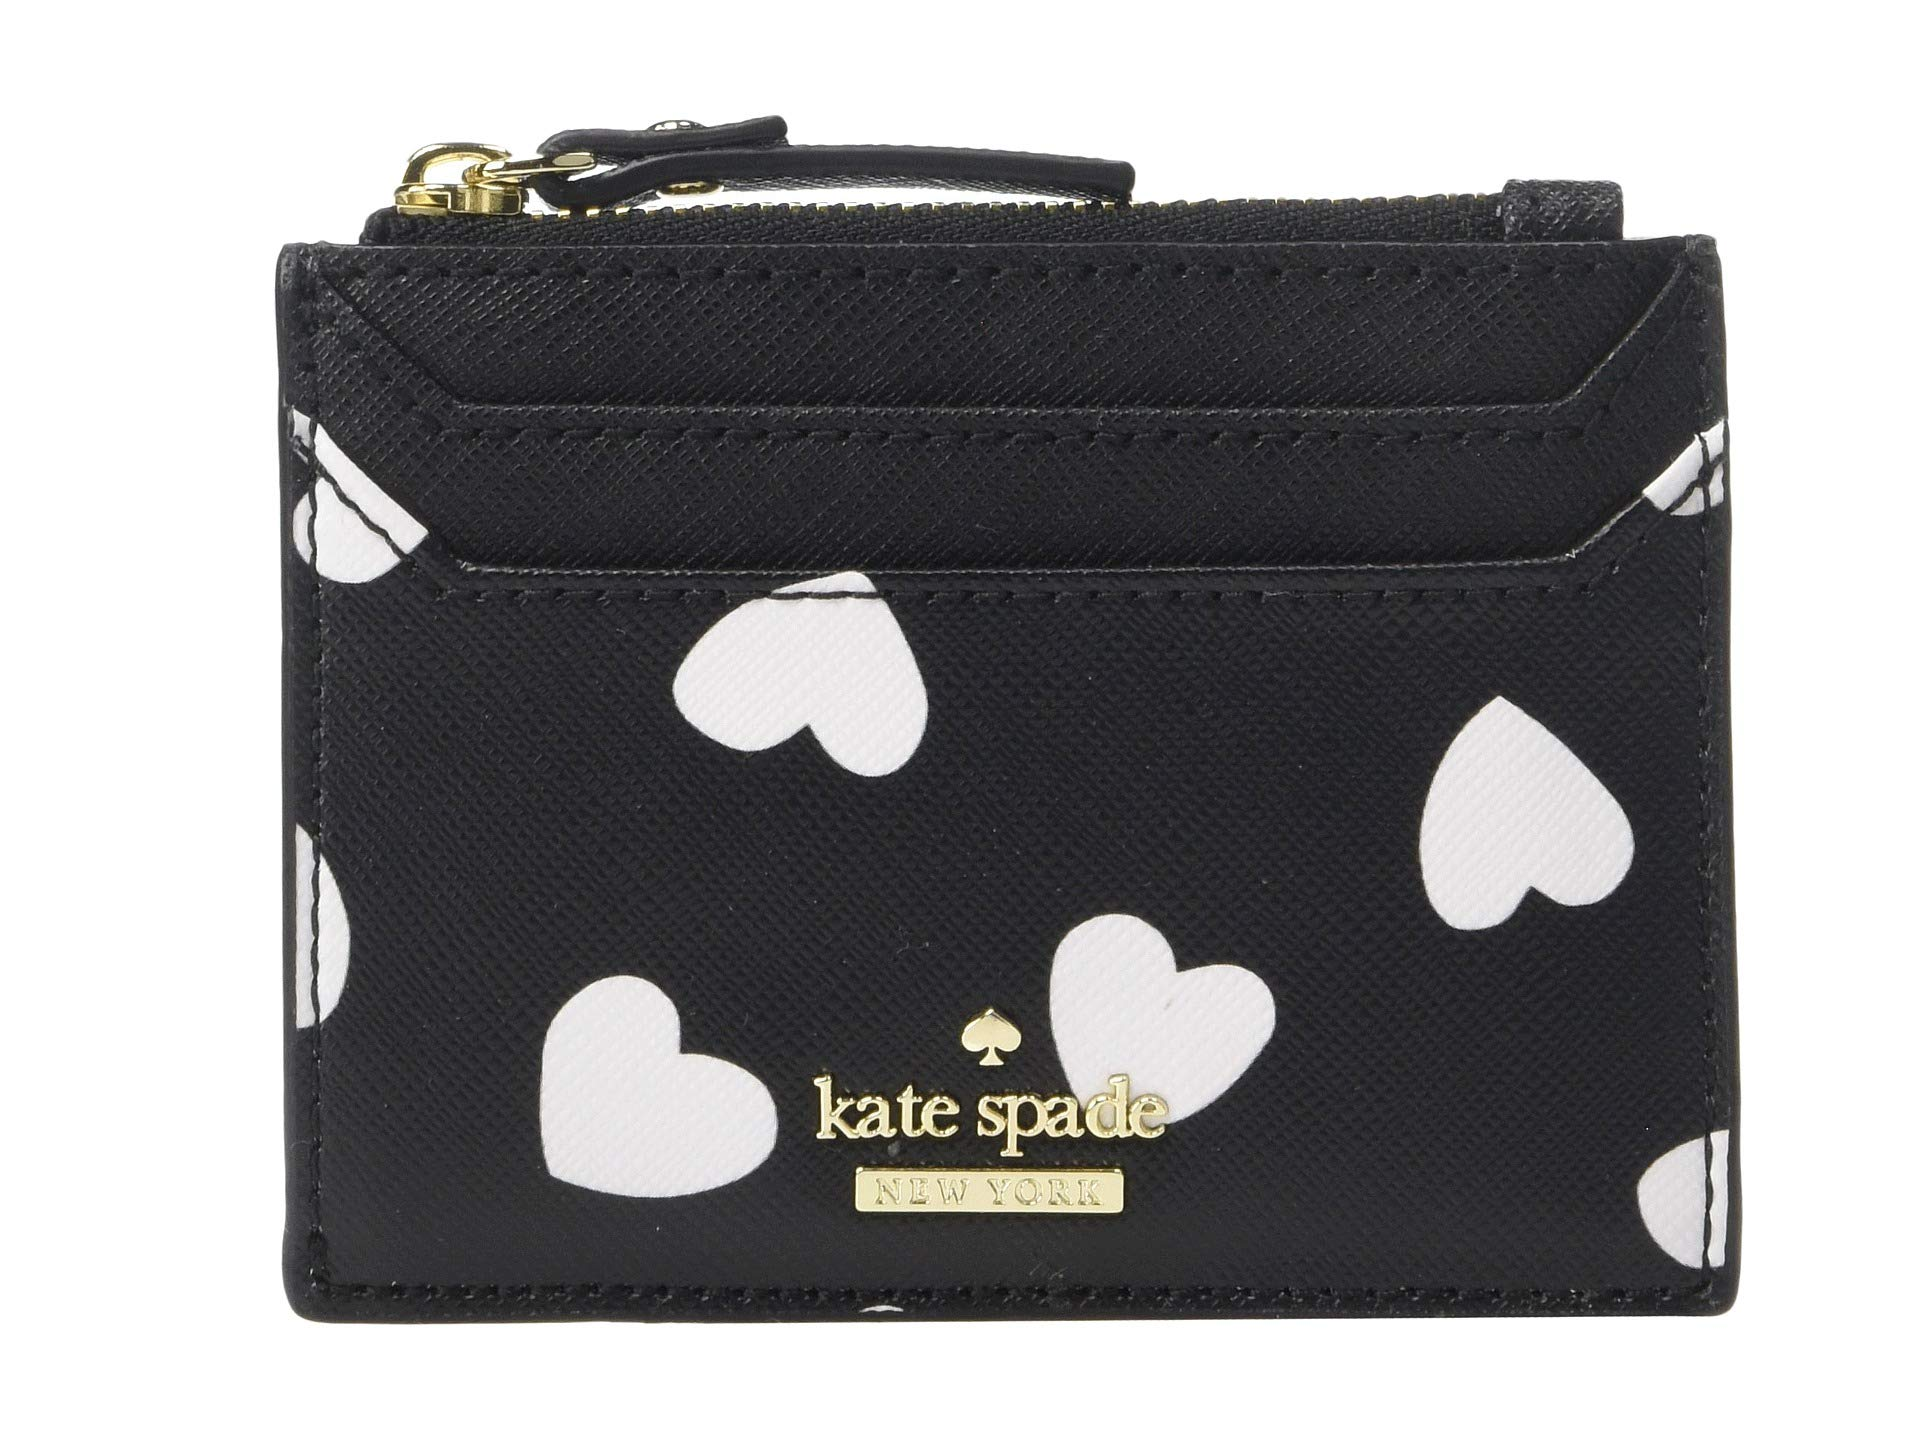 Kate Spade New York Women's Cameron Street Hearts Lalena Card Case, Black/Cream, One Size